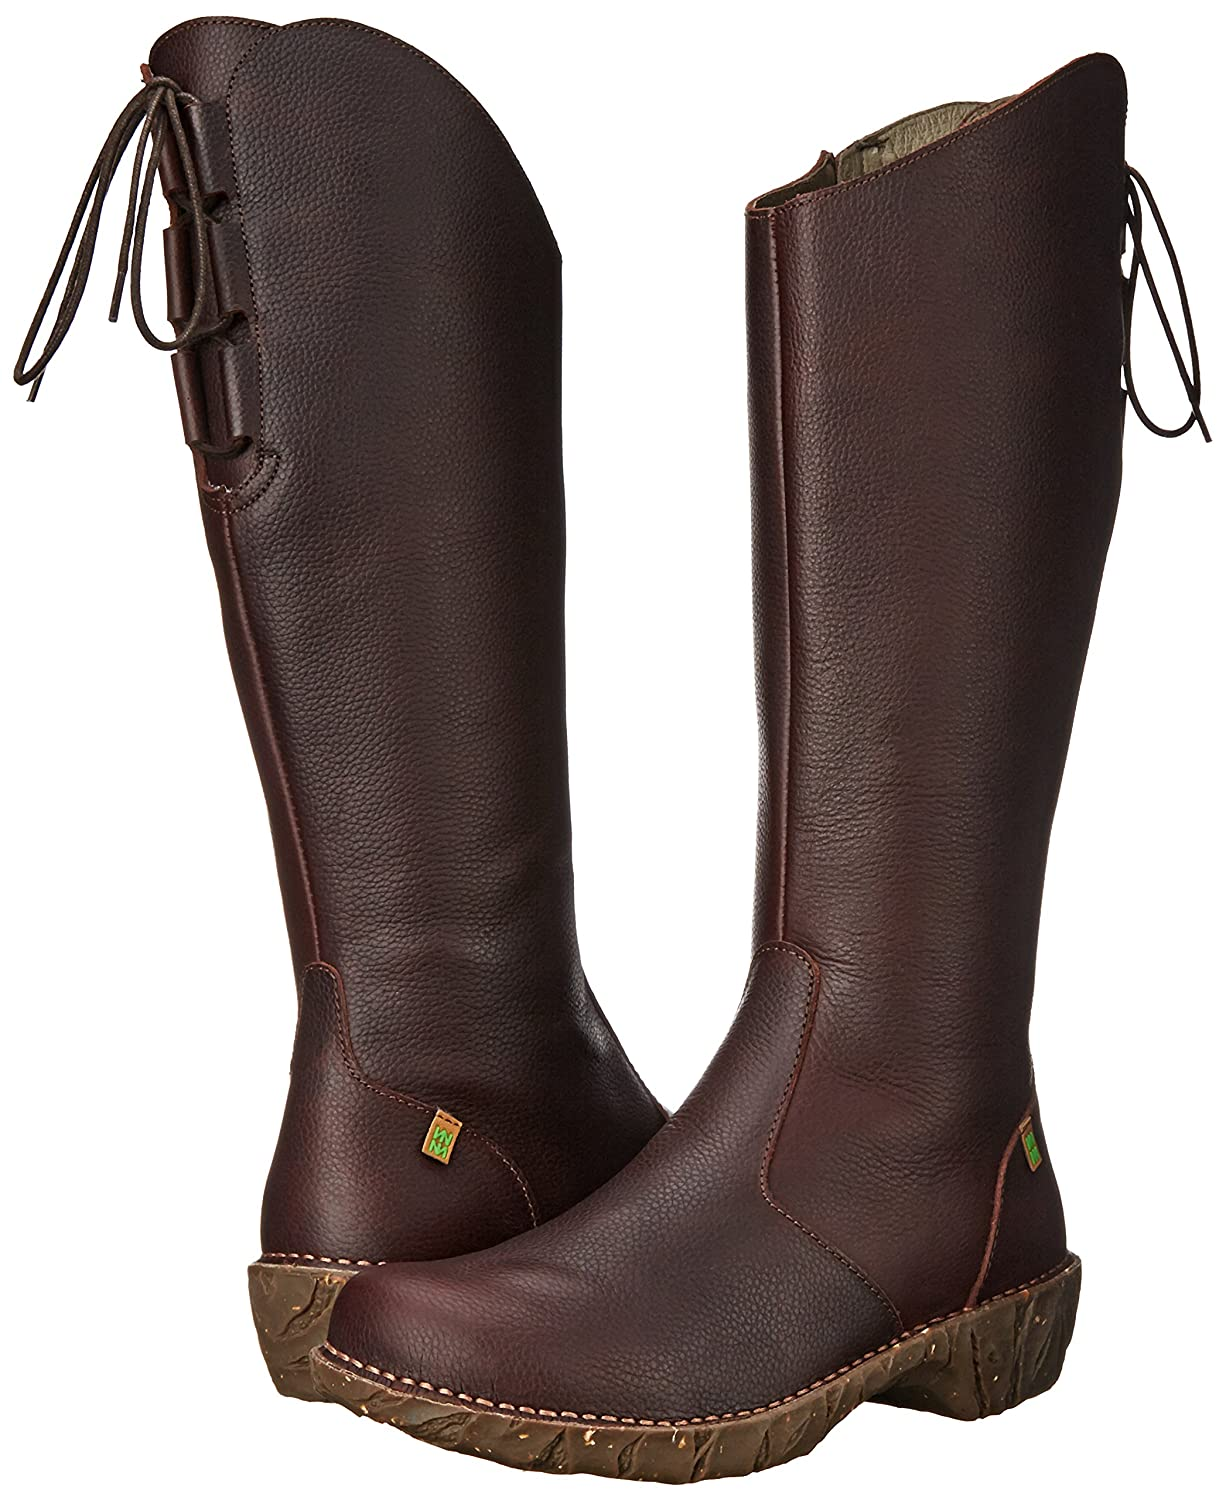 brown Marron Yggdrasil Bottes Grain Ne20 Naturalista Femme El 7w0Bpp